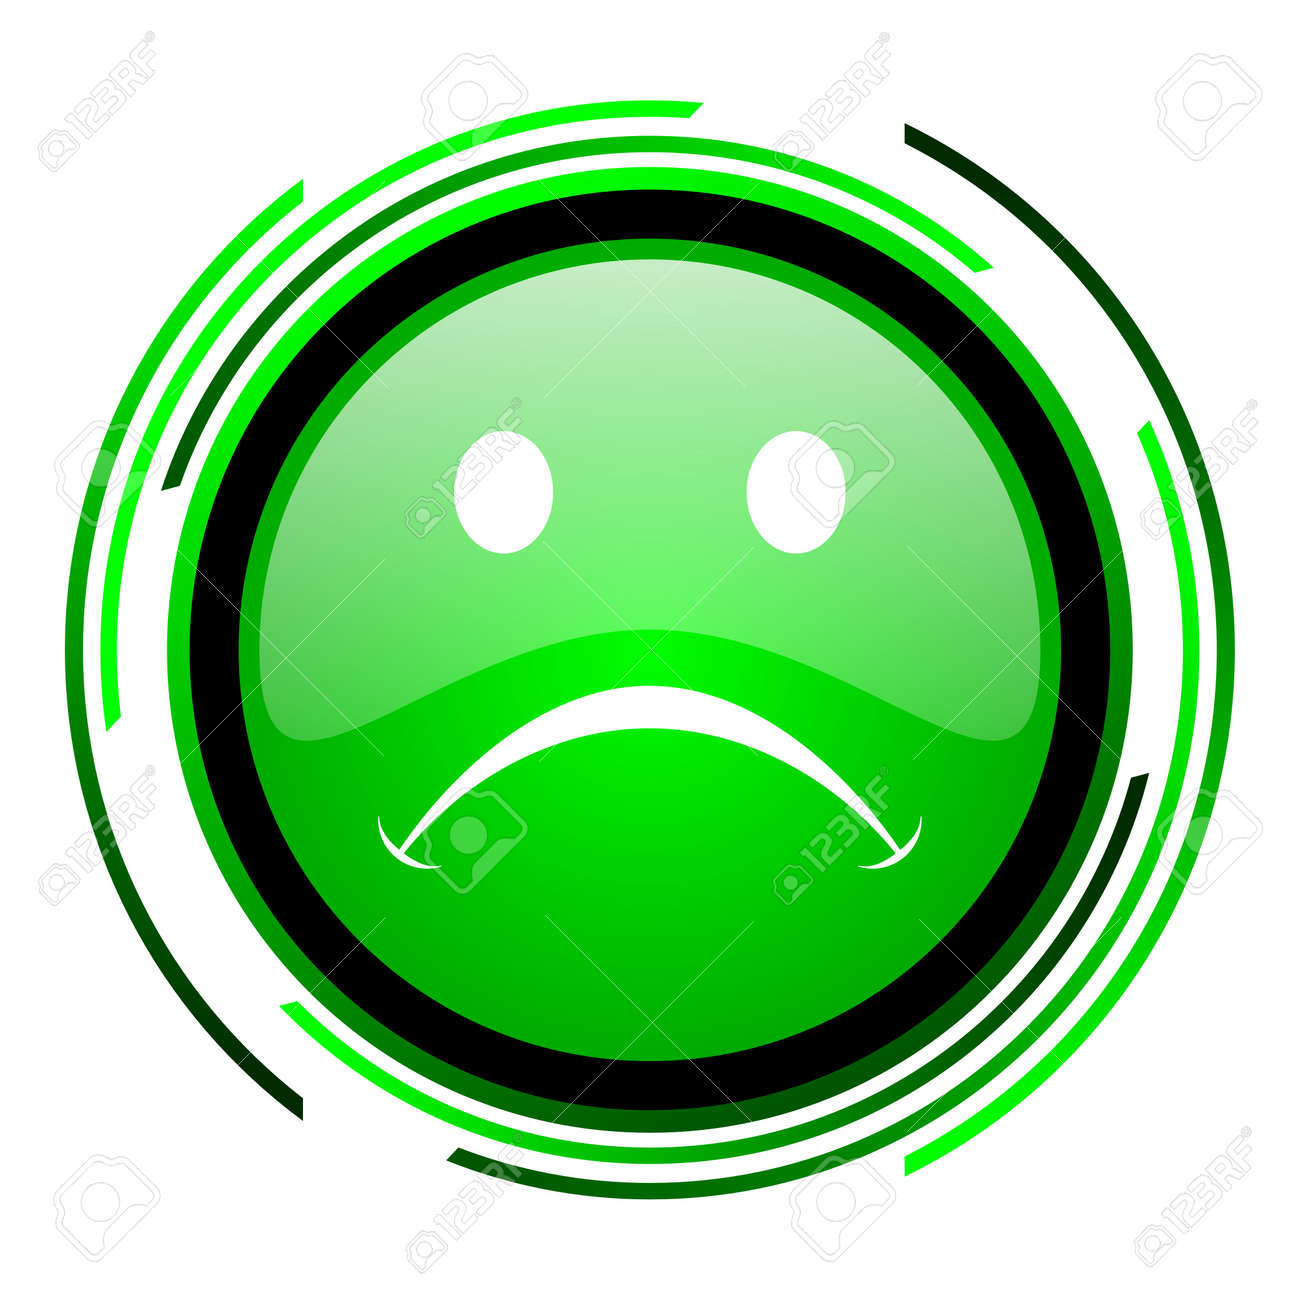 cry green circle glossy icon Stock Photo - 20099632